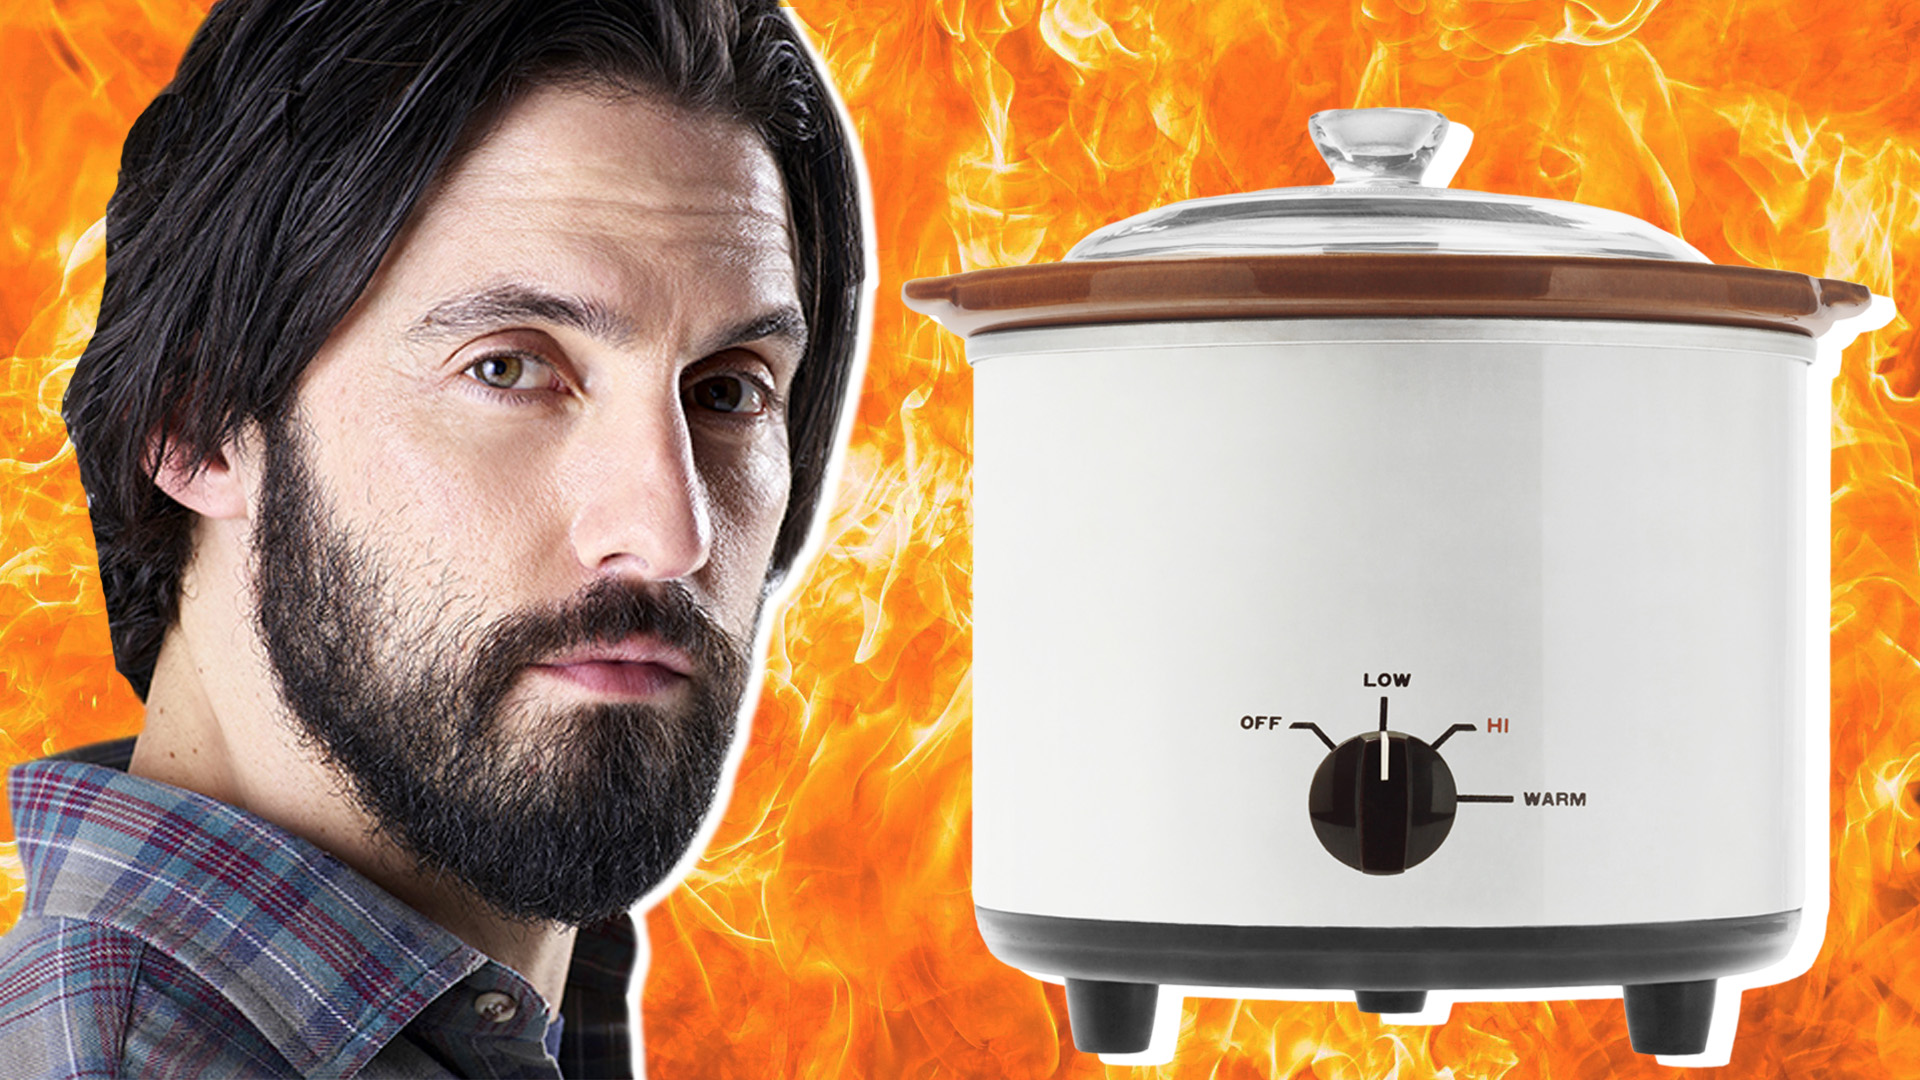 crockpot starts firstever twitter account after �this is